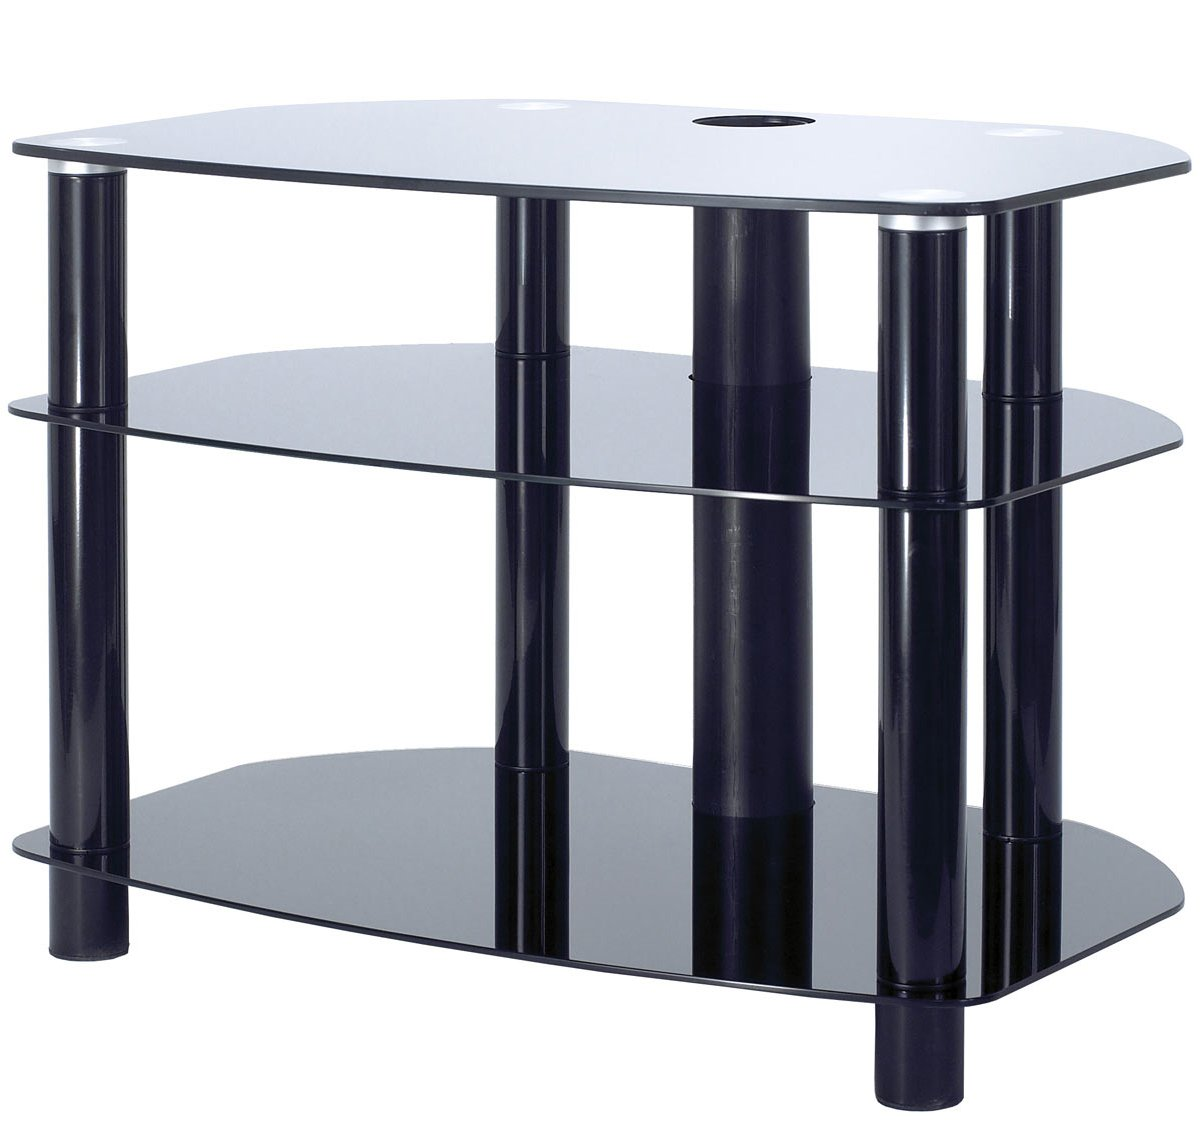 alphason black glass tv stand for up to 32 tvs. Black Bedroom Furniture Sets. Home Design Ideas